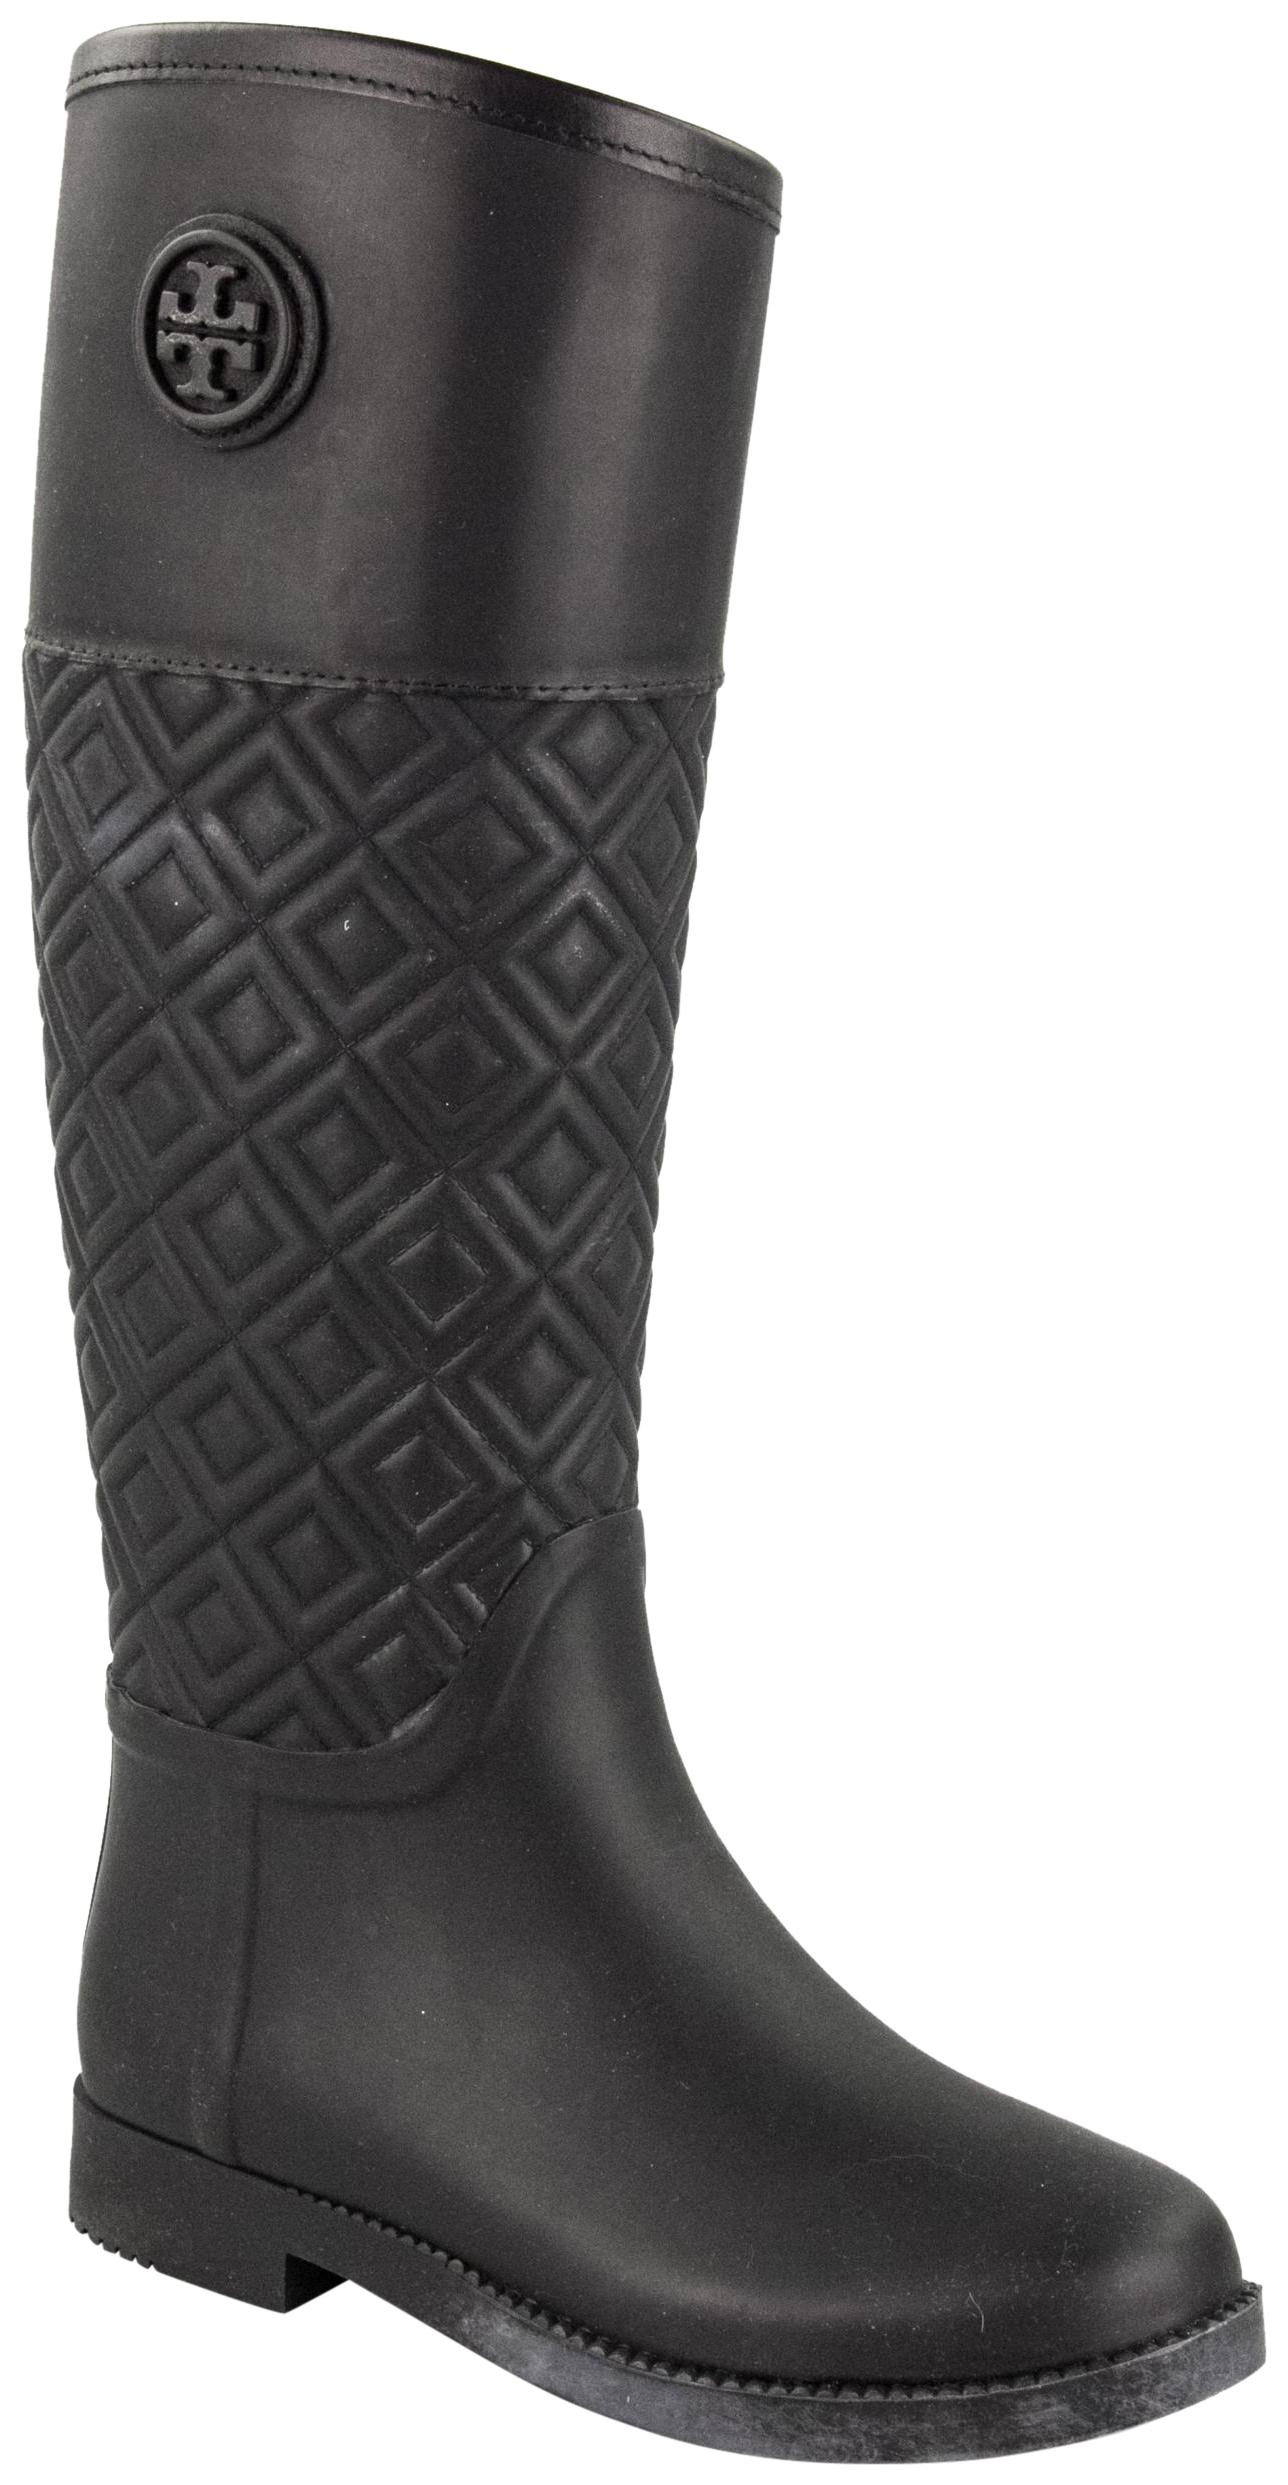 Tory Burch Black Marion Quilted Rubber Boots Booties Size